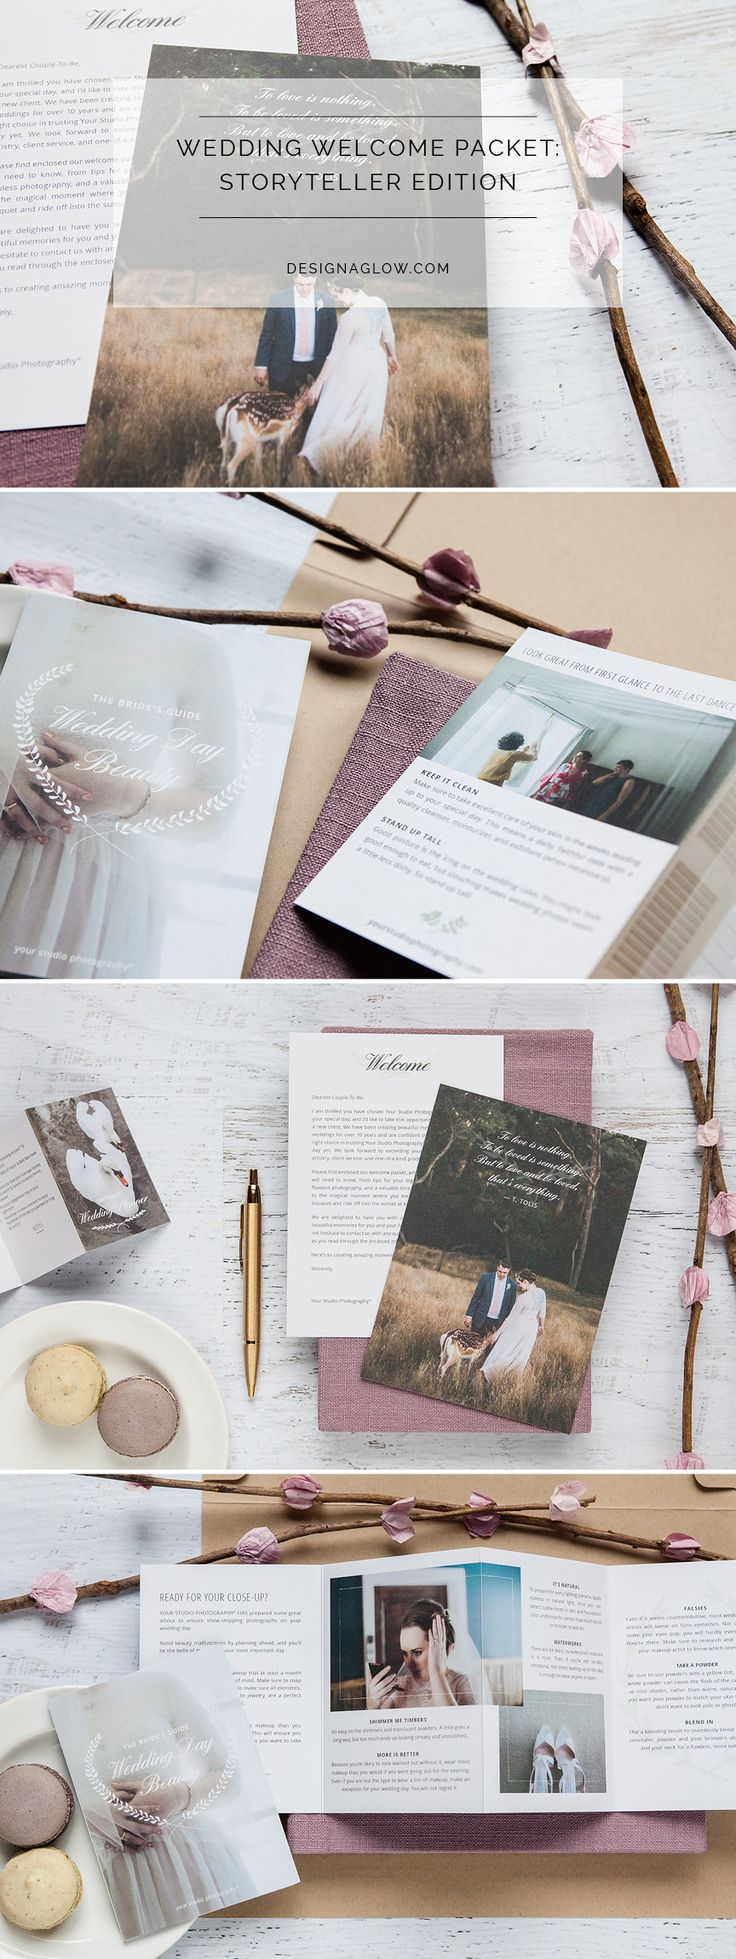 Wedding Welcome Packet: Storyteller Edition